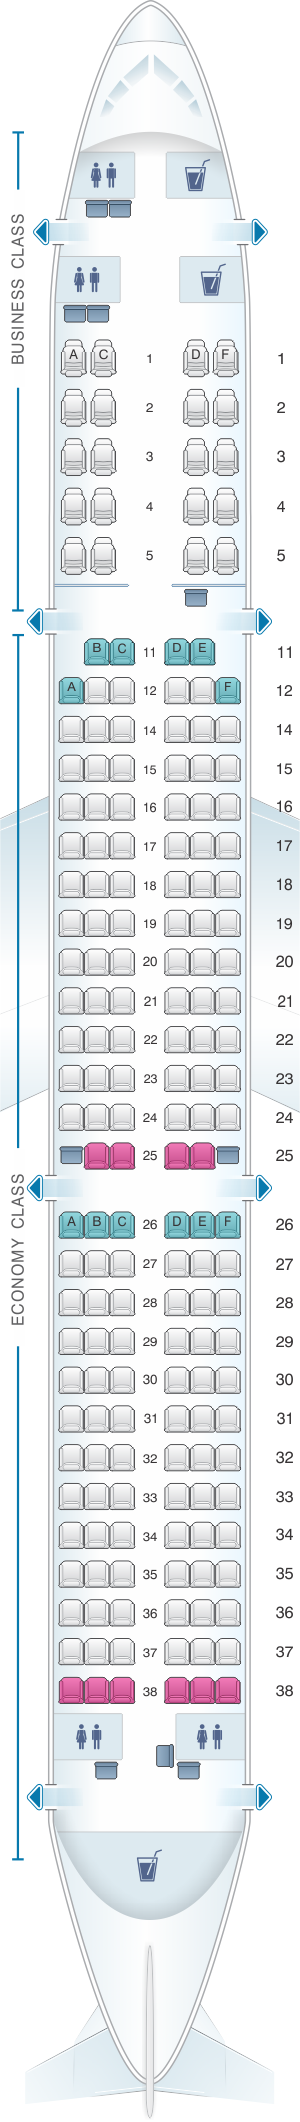 Seat map for Kingfisher Airlines Airbus A321 200 178PAX